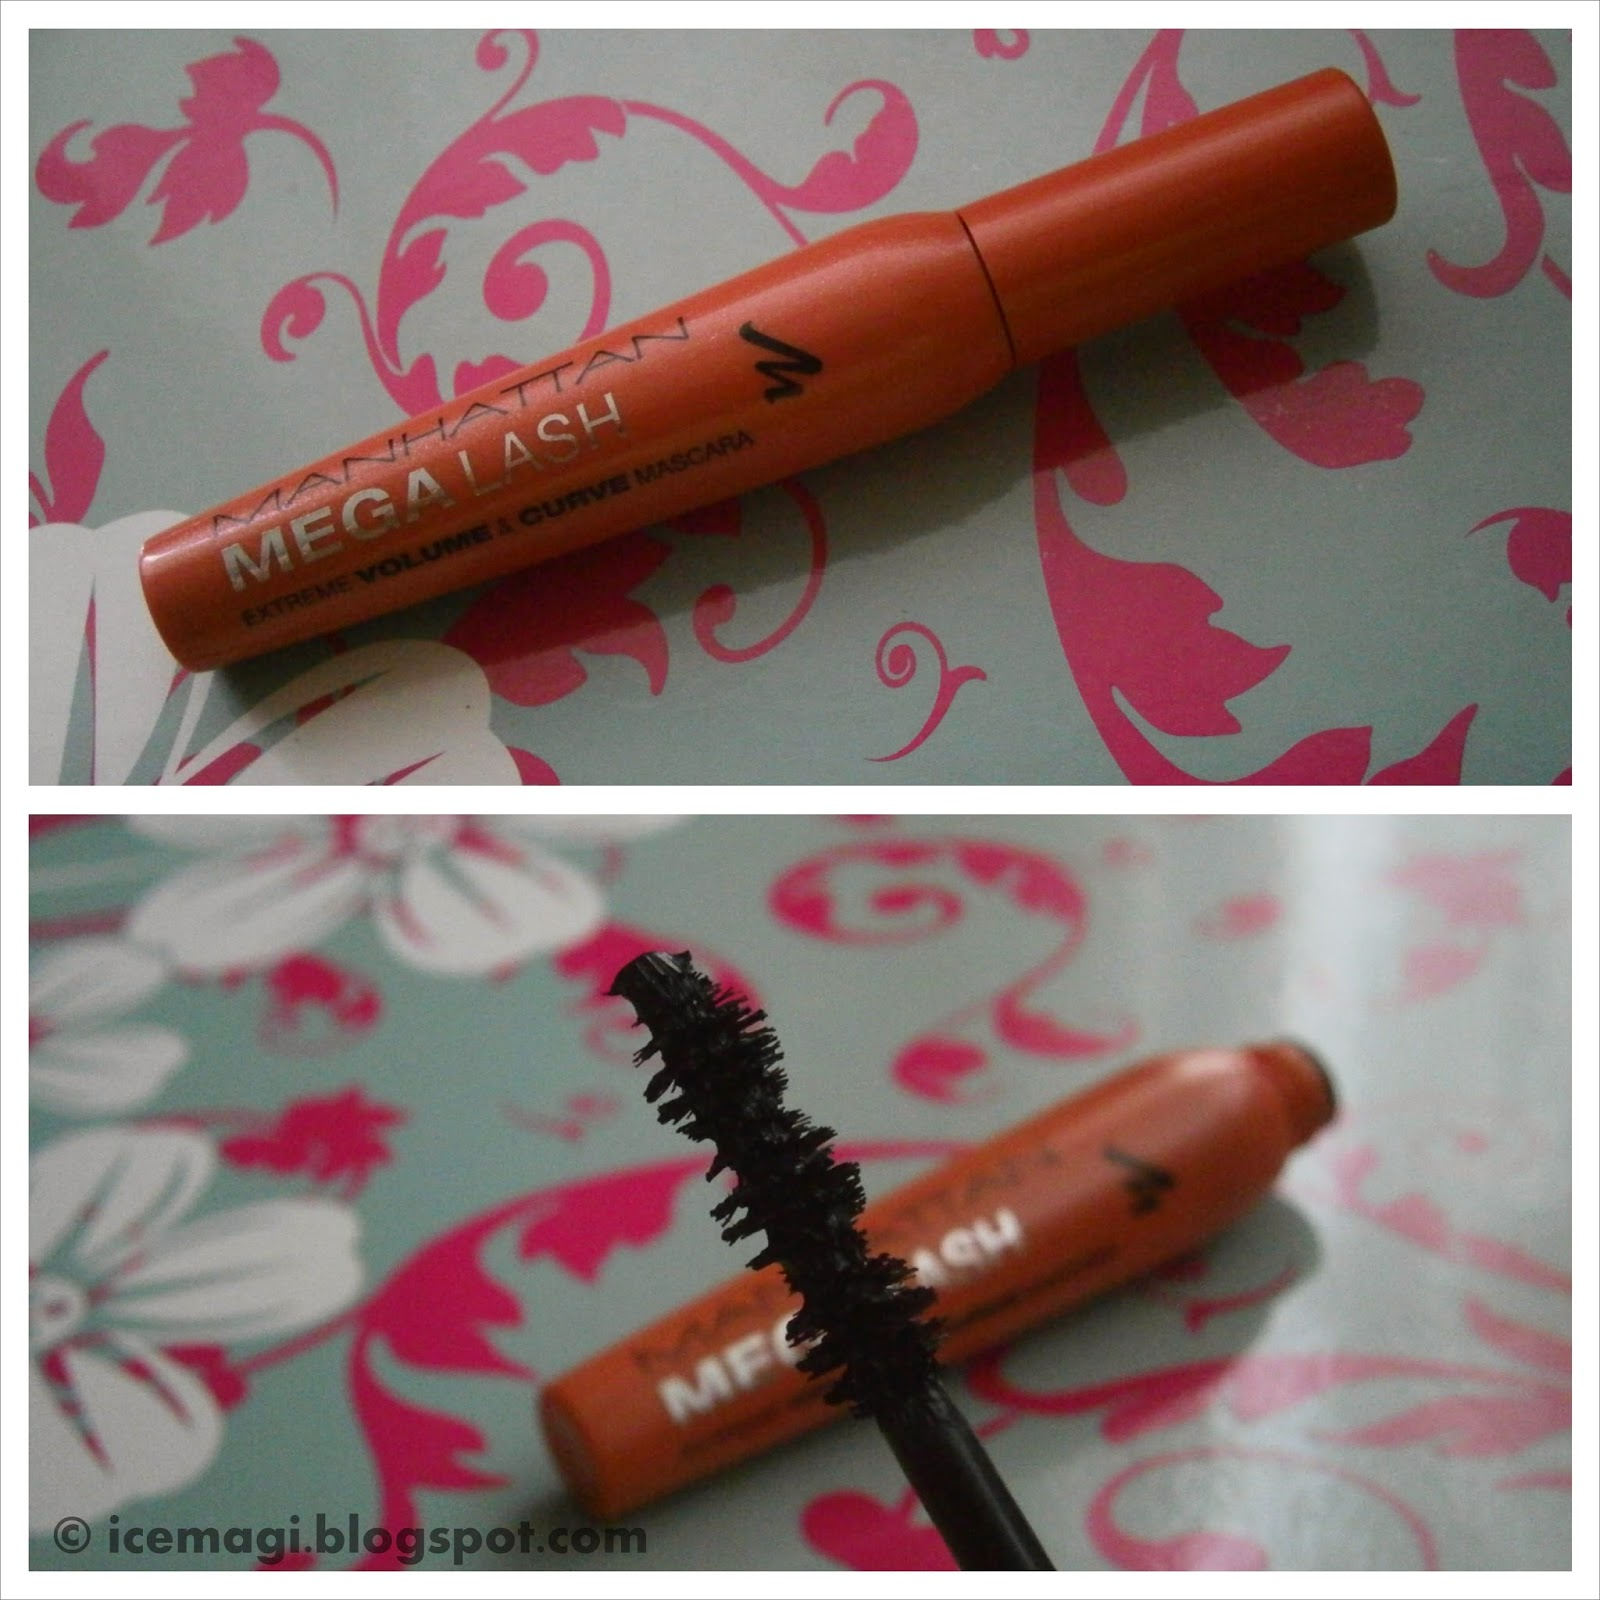 Manhattan Mega Lash mascara